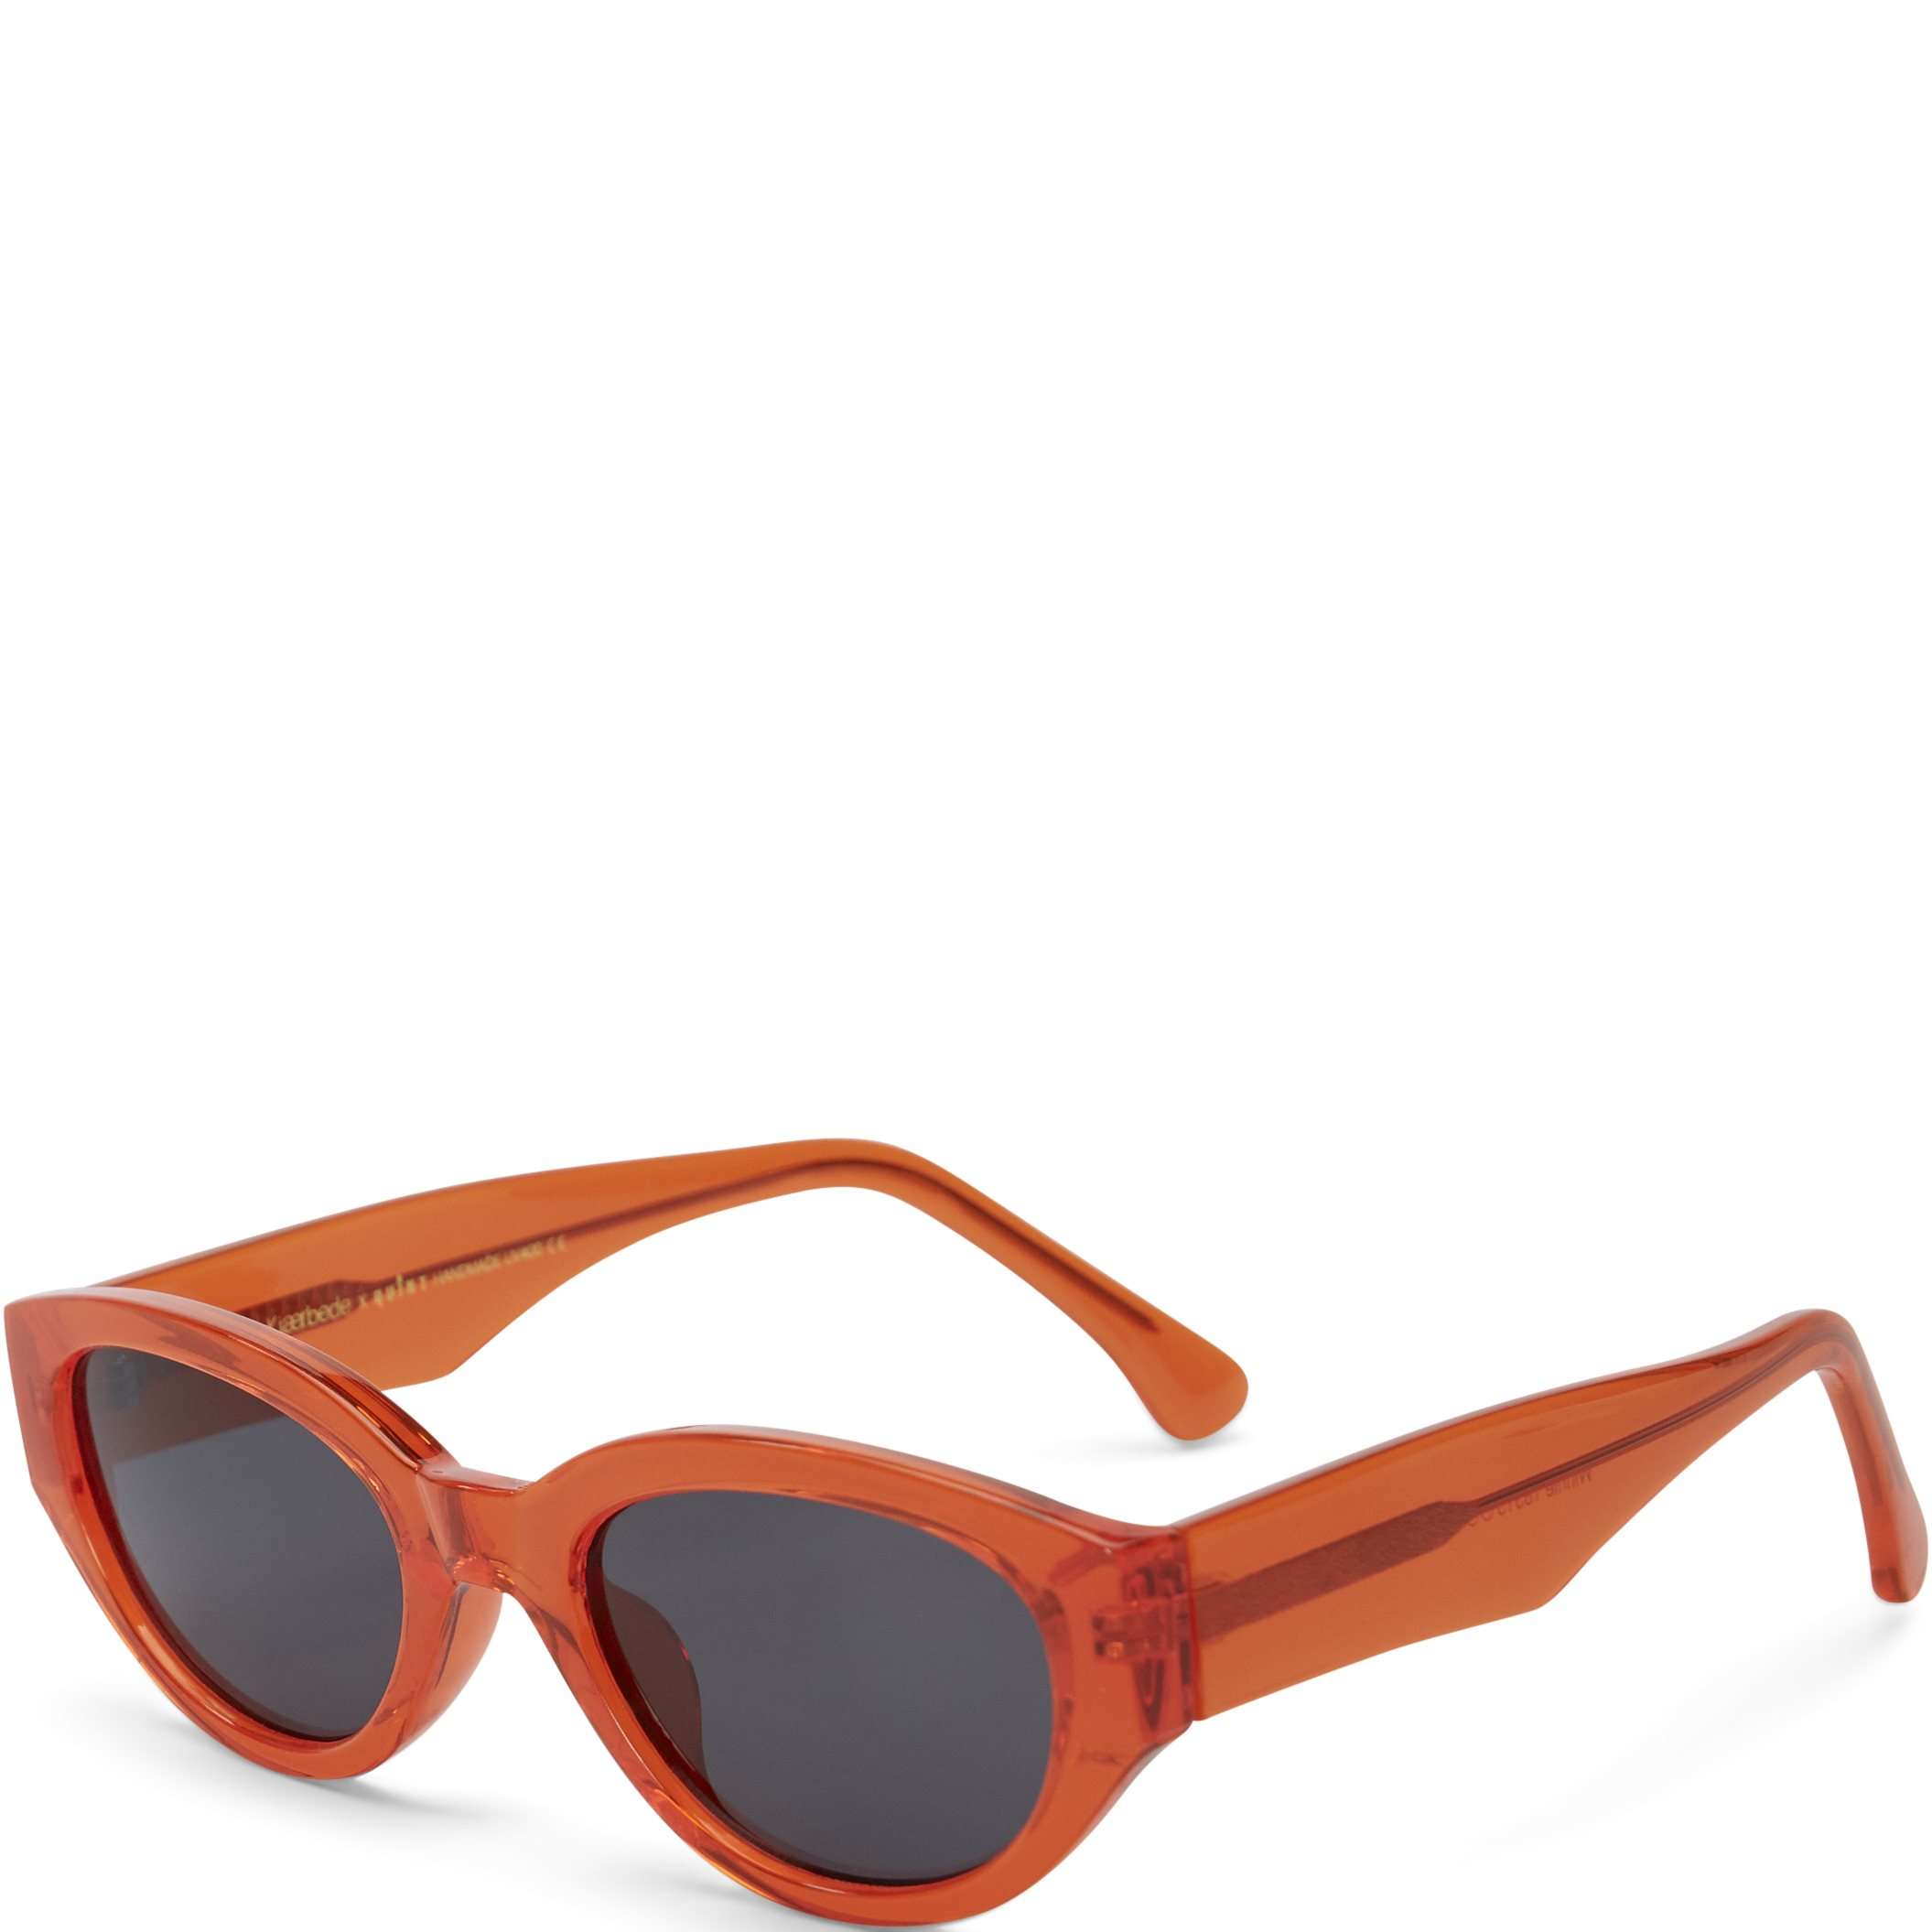 Winnie Solbriller - Accessories - Orange